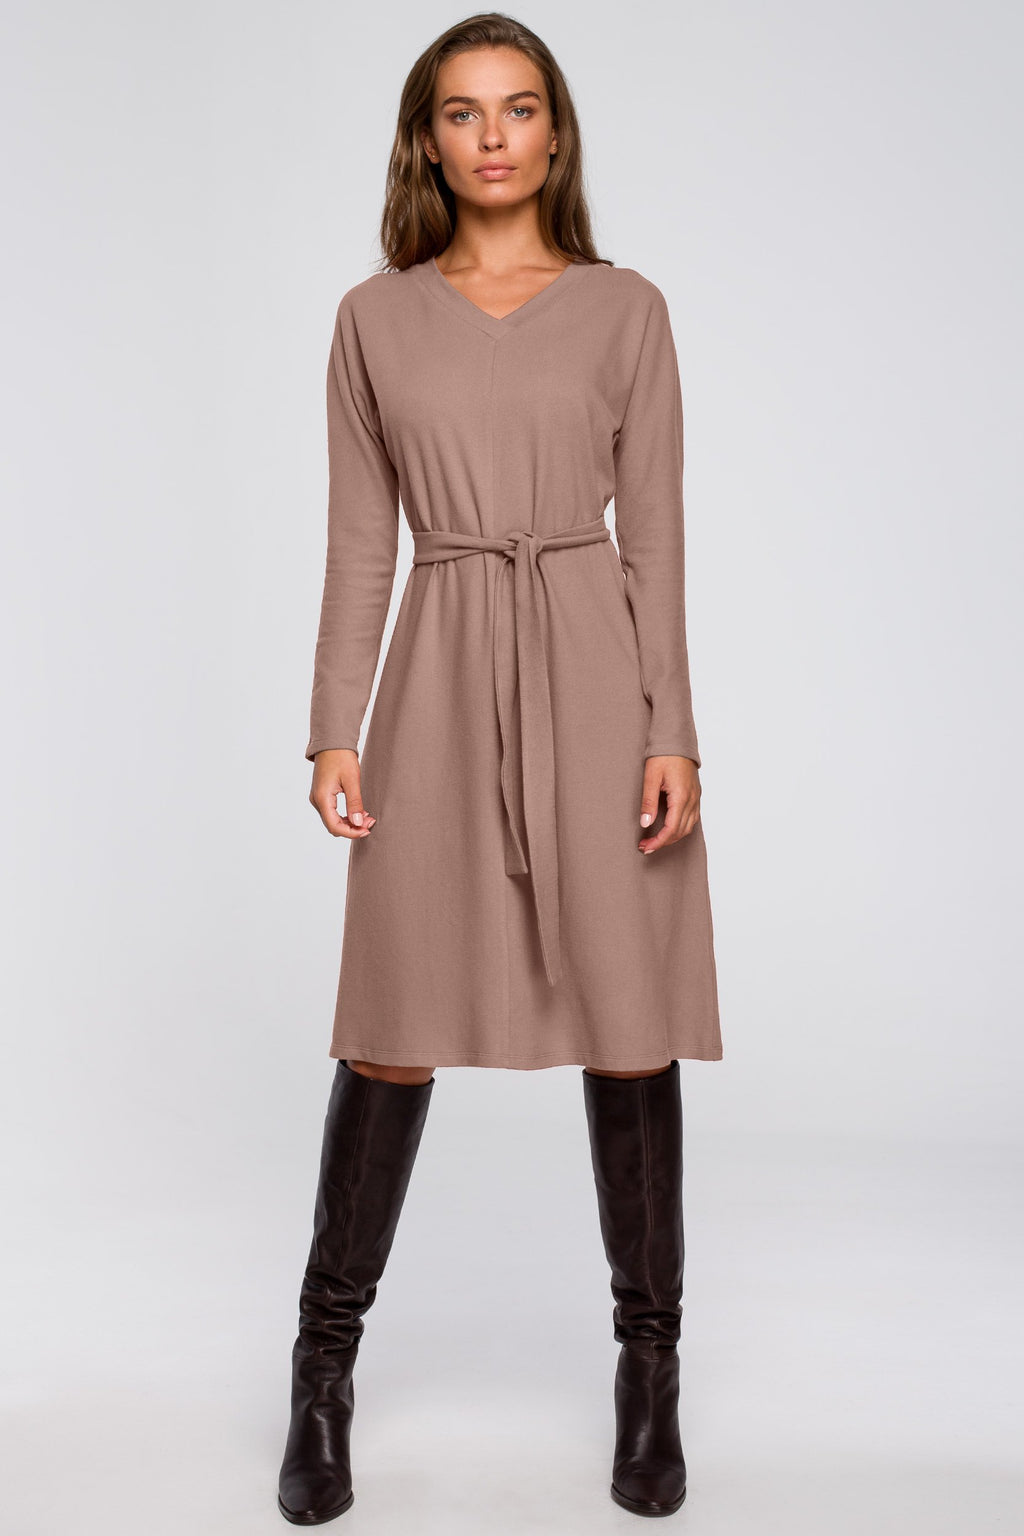 Beige A Line Viscose Dress With A Belt - So Chic Boutique